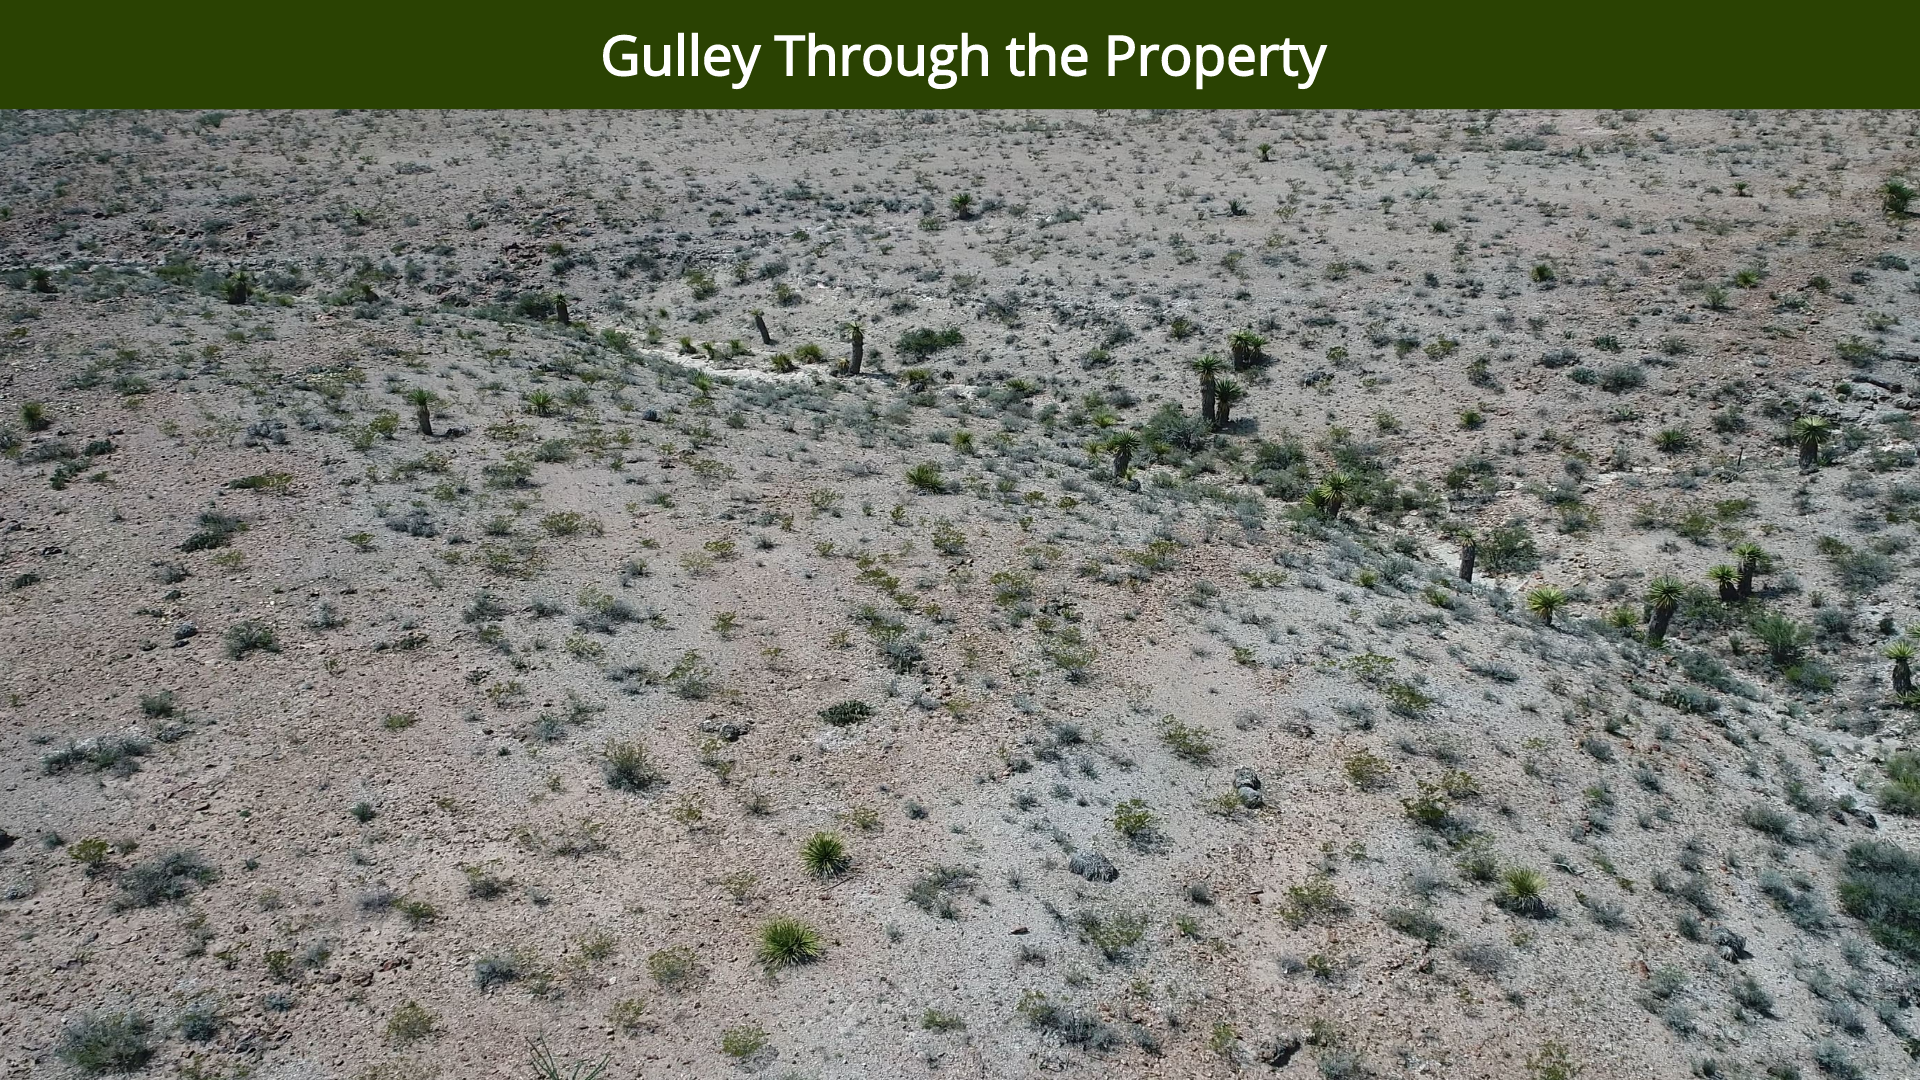 Gulley Through the Property